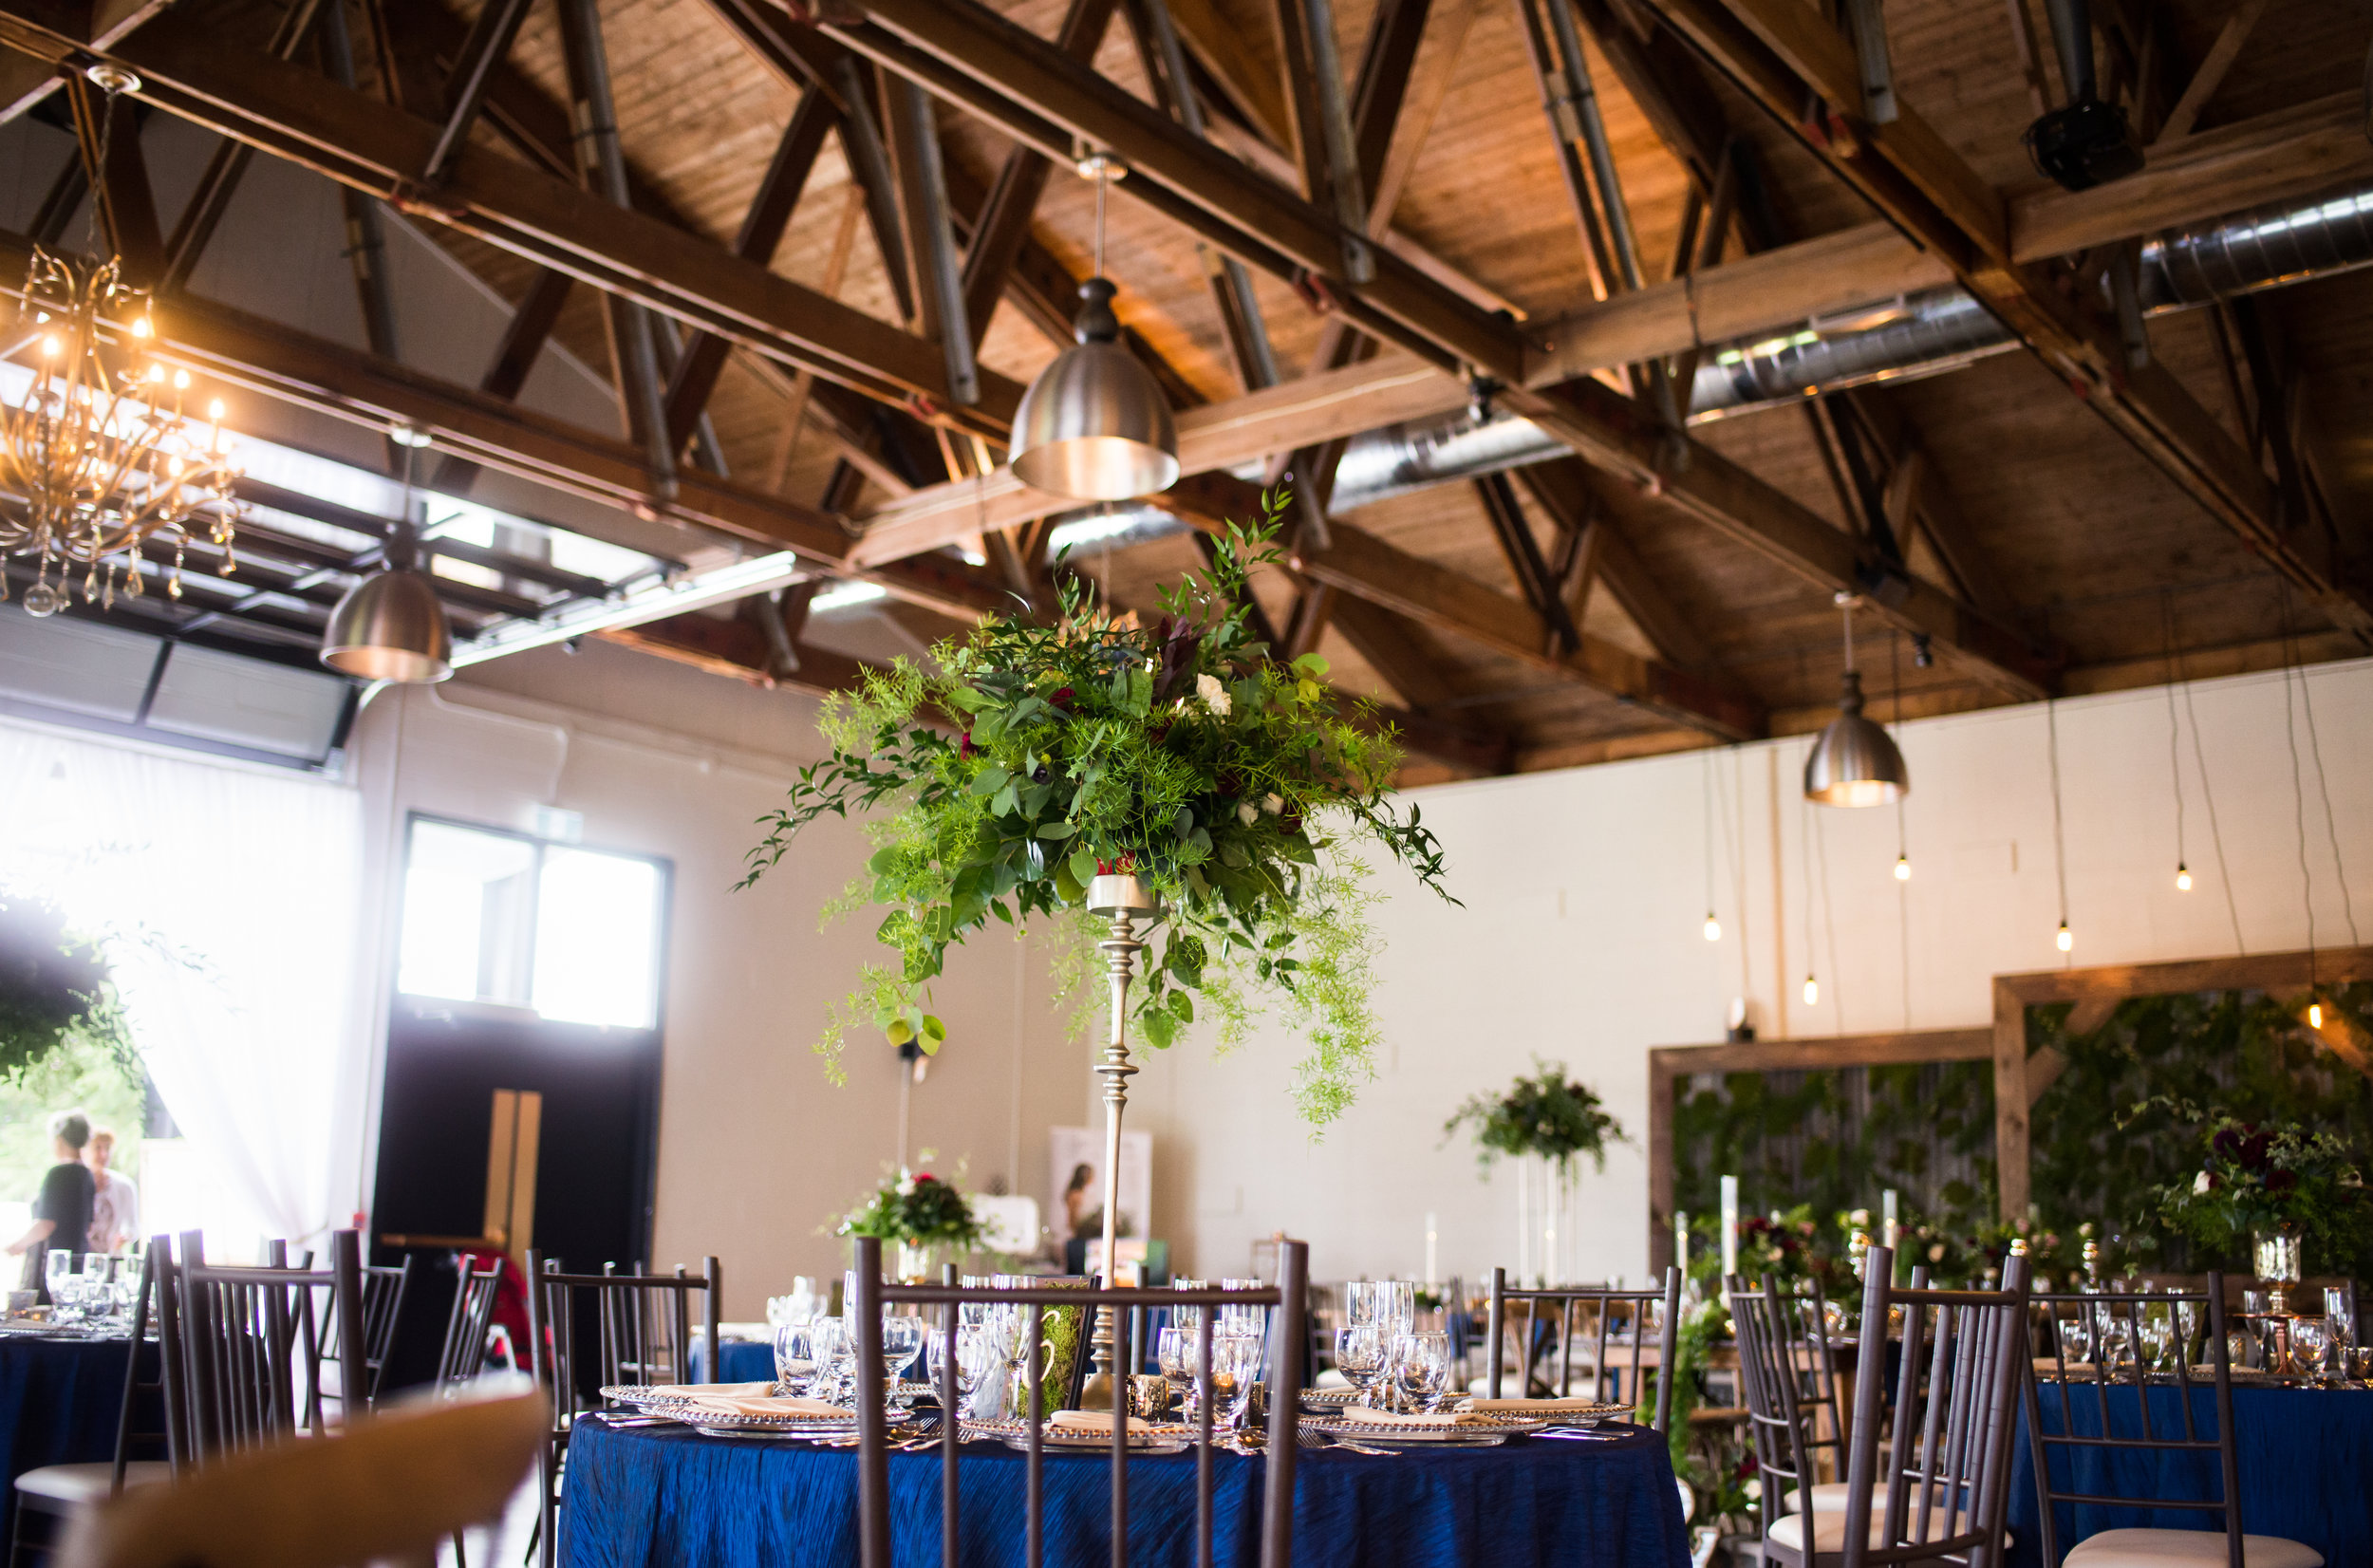 The Hideaway  reception space features an exposed wood beam ceiling, elegant chandeliers and pendant lighting, dark-framed Chiavari chairs, and massive black-pane garage doors.